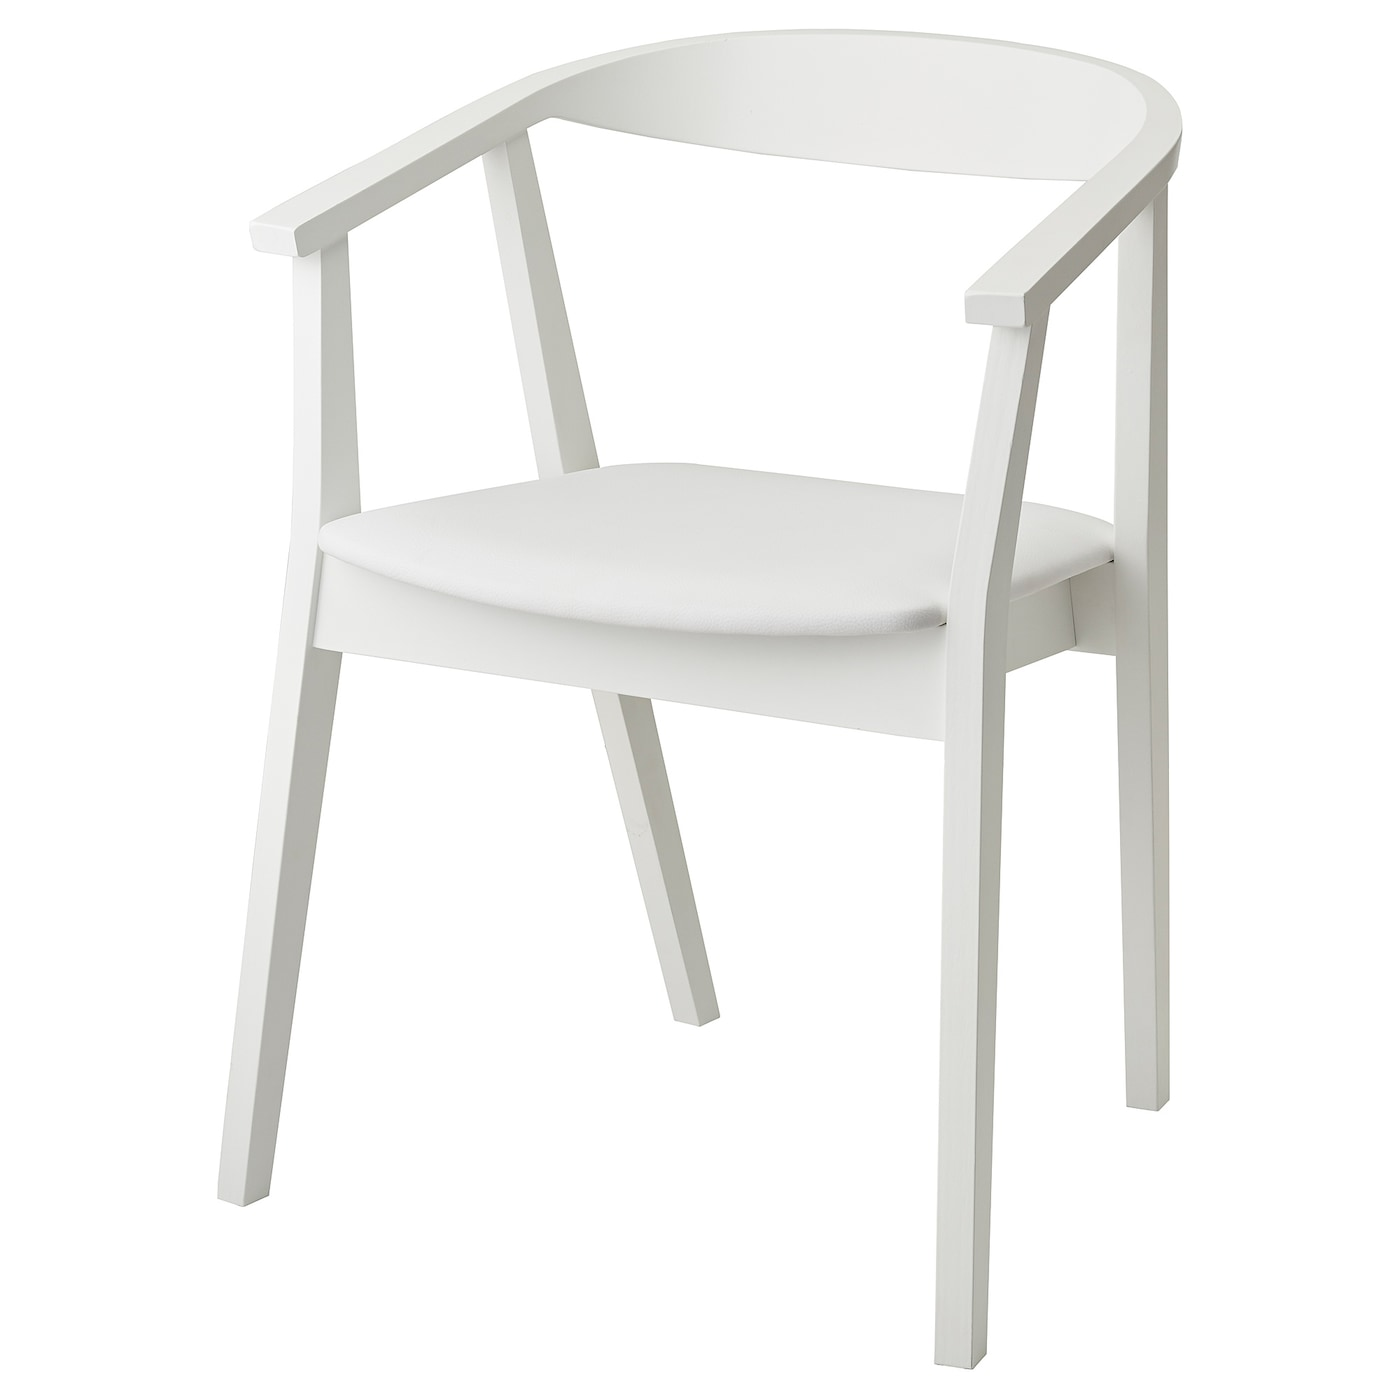 IKEA STOCKHOLM chair You sit comfortably thanks to the padded seat.